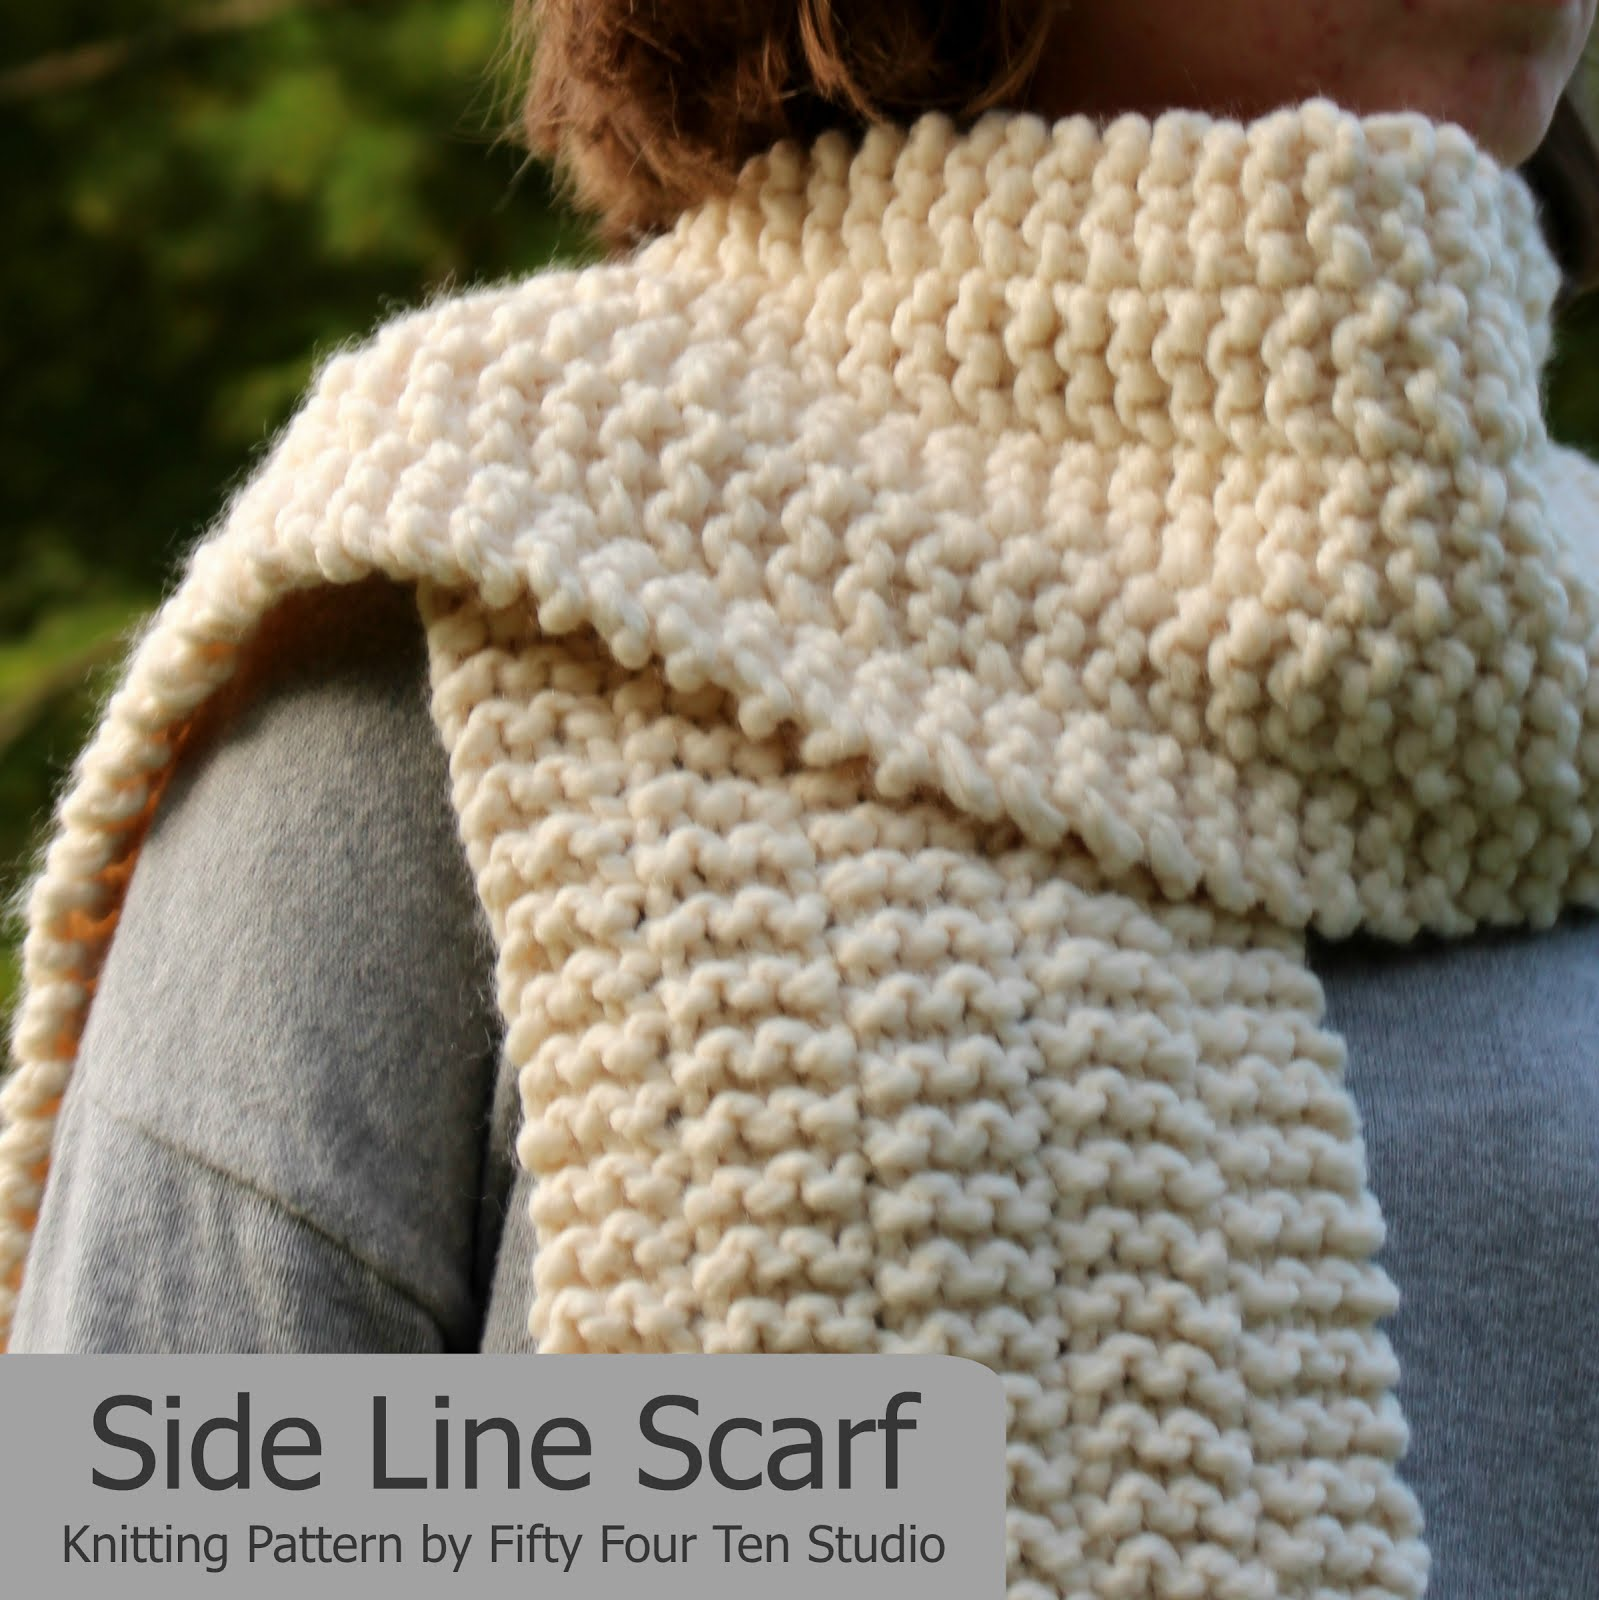 Fifty Four Ten Studio: Free Patterns